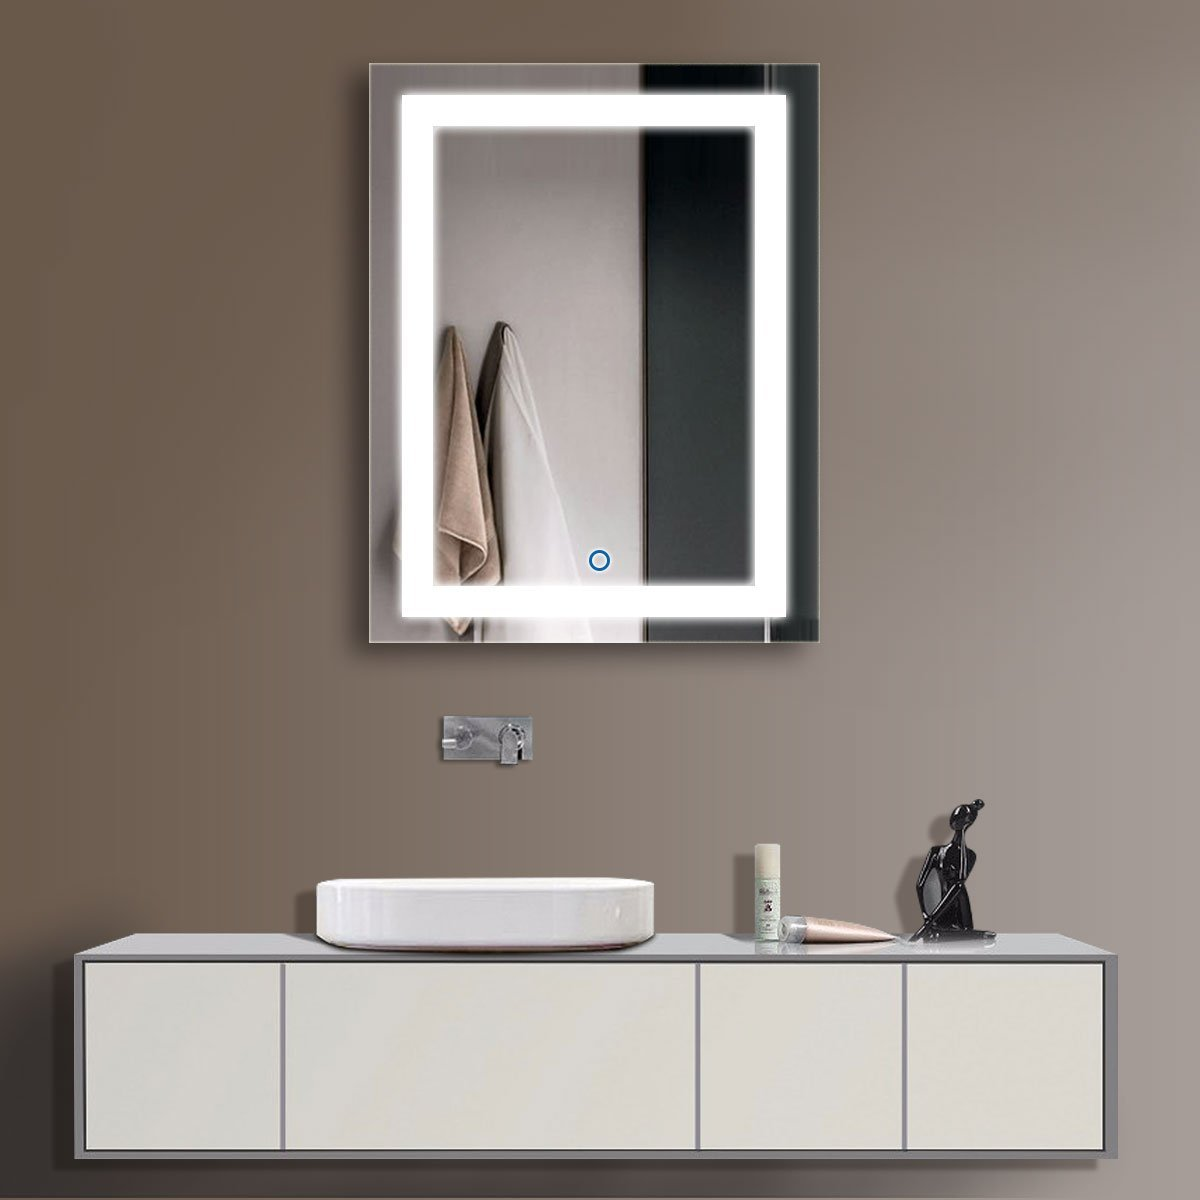 amazoncom hyh vertical led bathroom silvered mirror with touch button3628 home u0026 kitchen